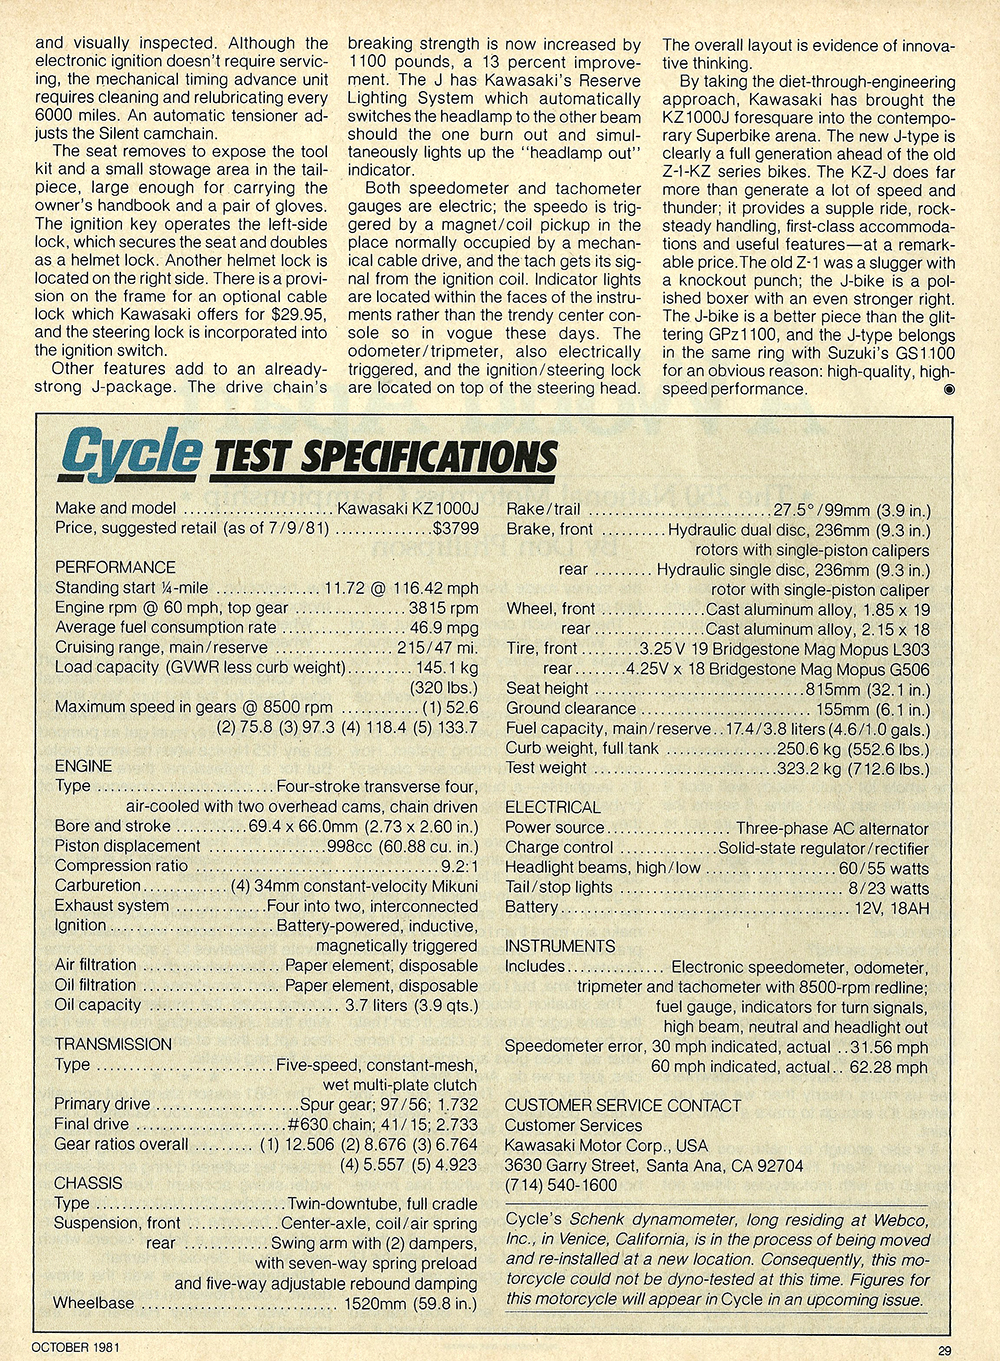 1981 Kawasaki KZ1000 J road test 10.jpg